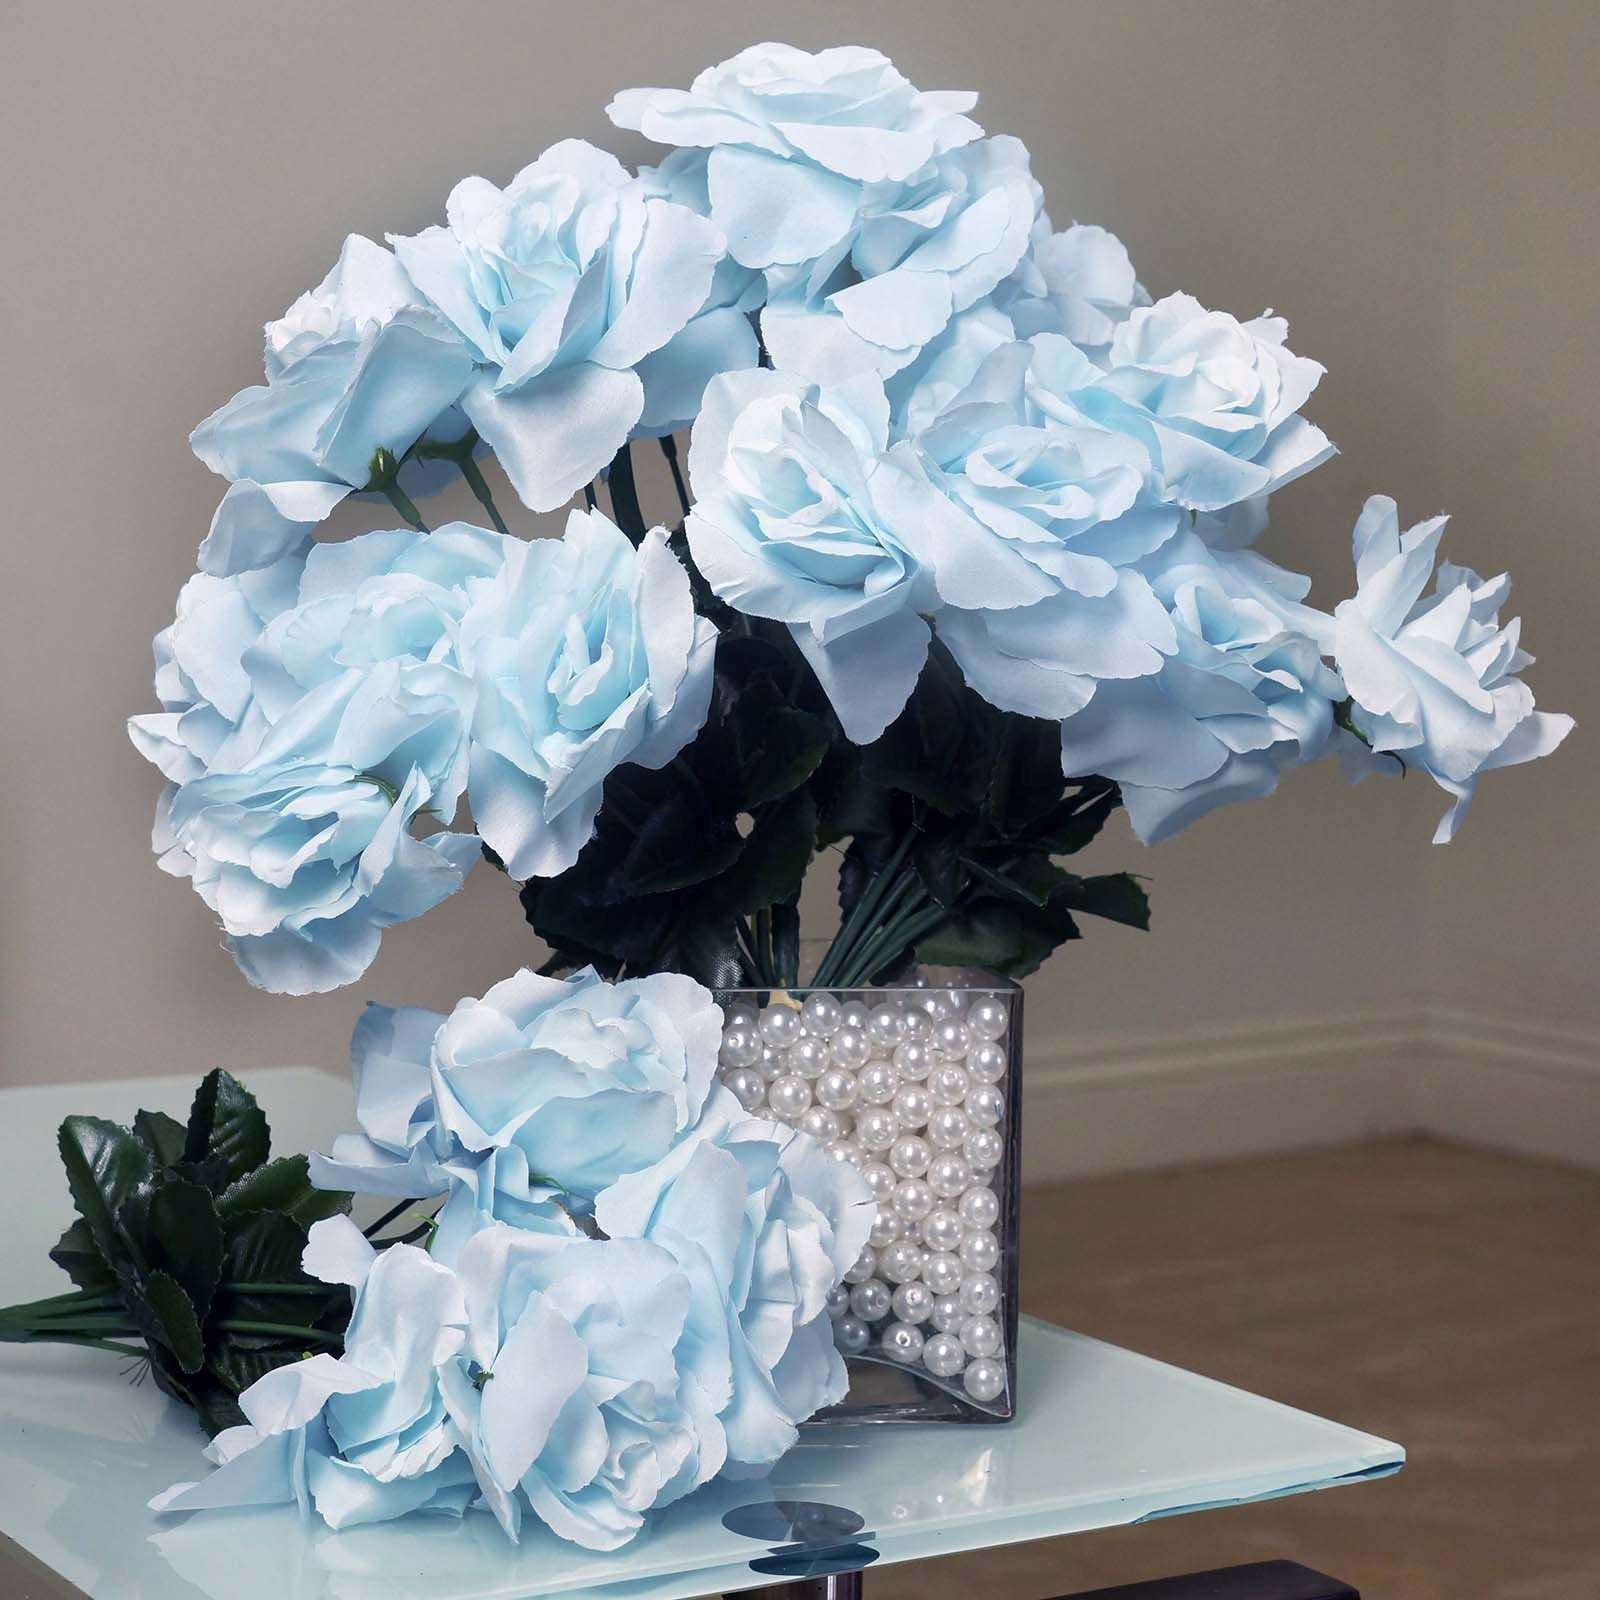 12 Bushes 84 Pcs Baby Blue Artificial Silk Rose Flowers With Green